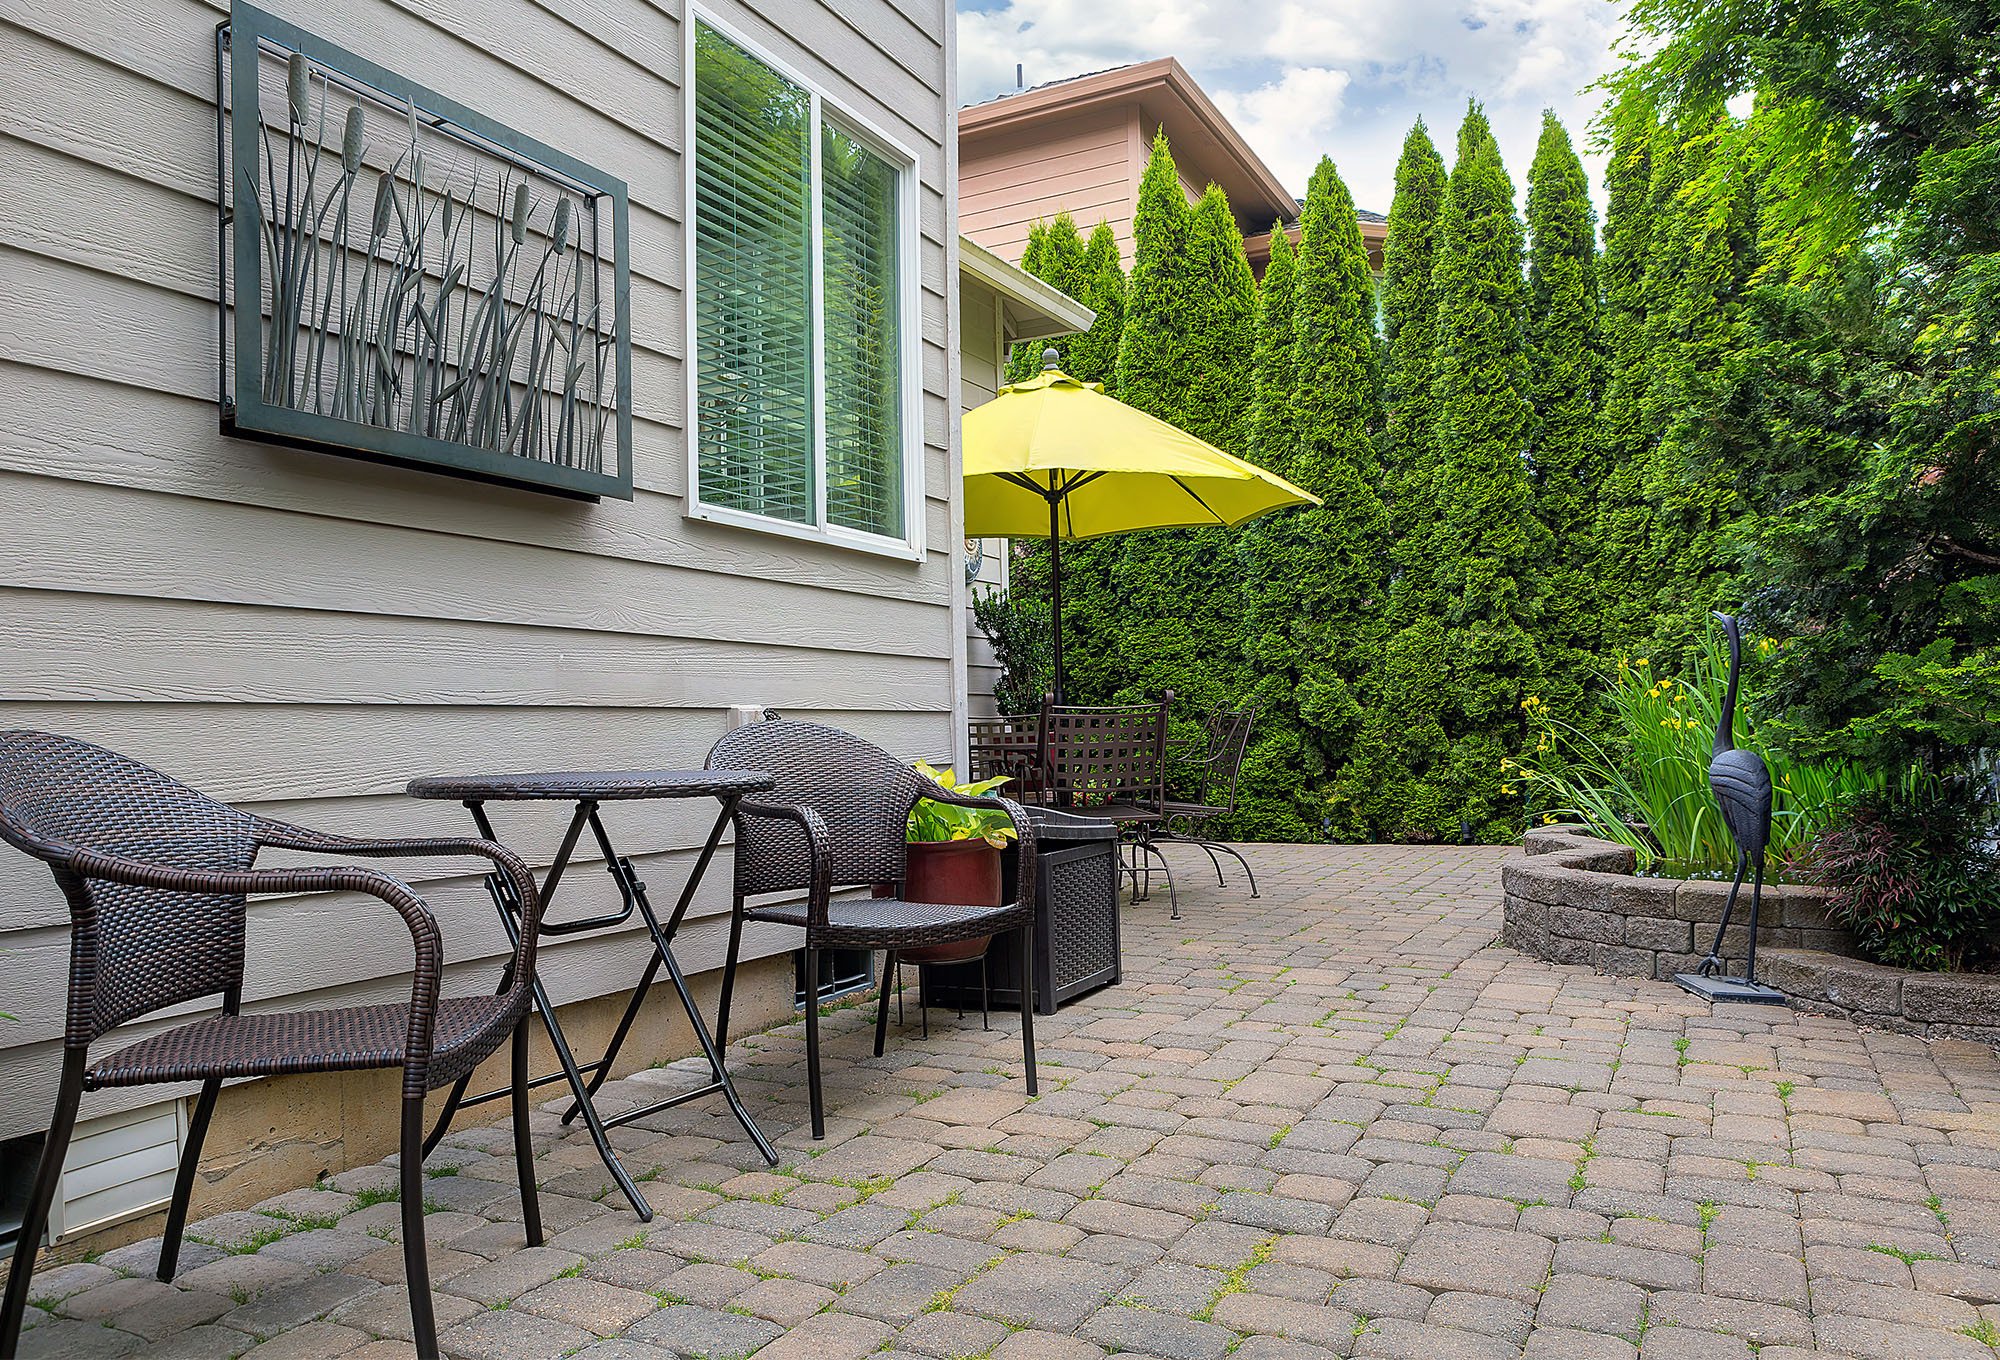 bistro table and chair on paver patio attached to house